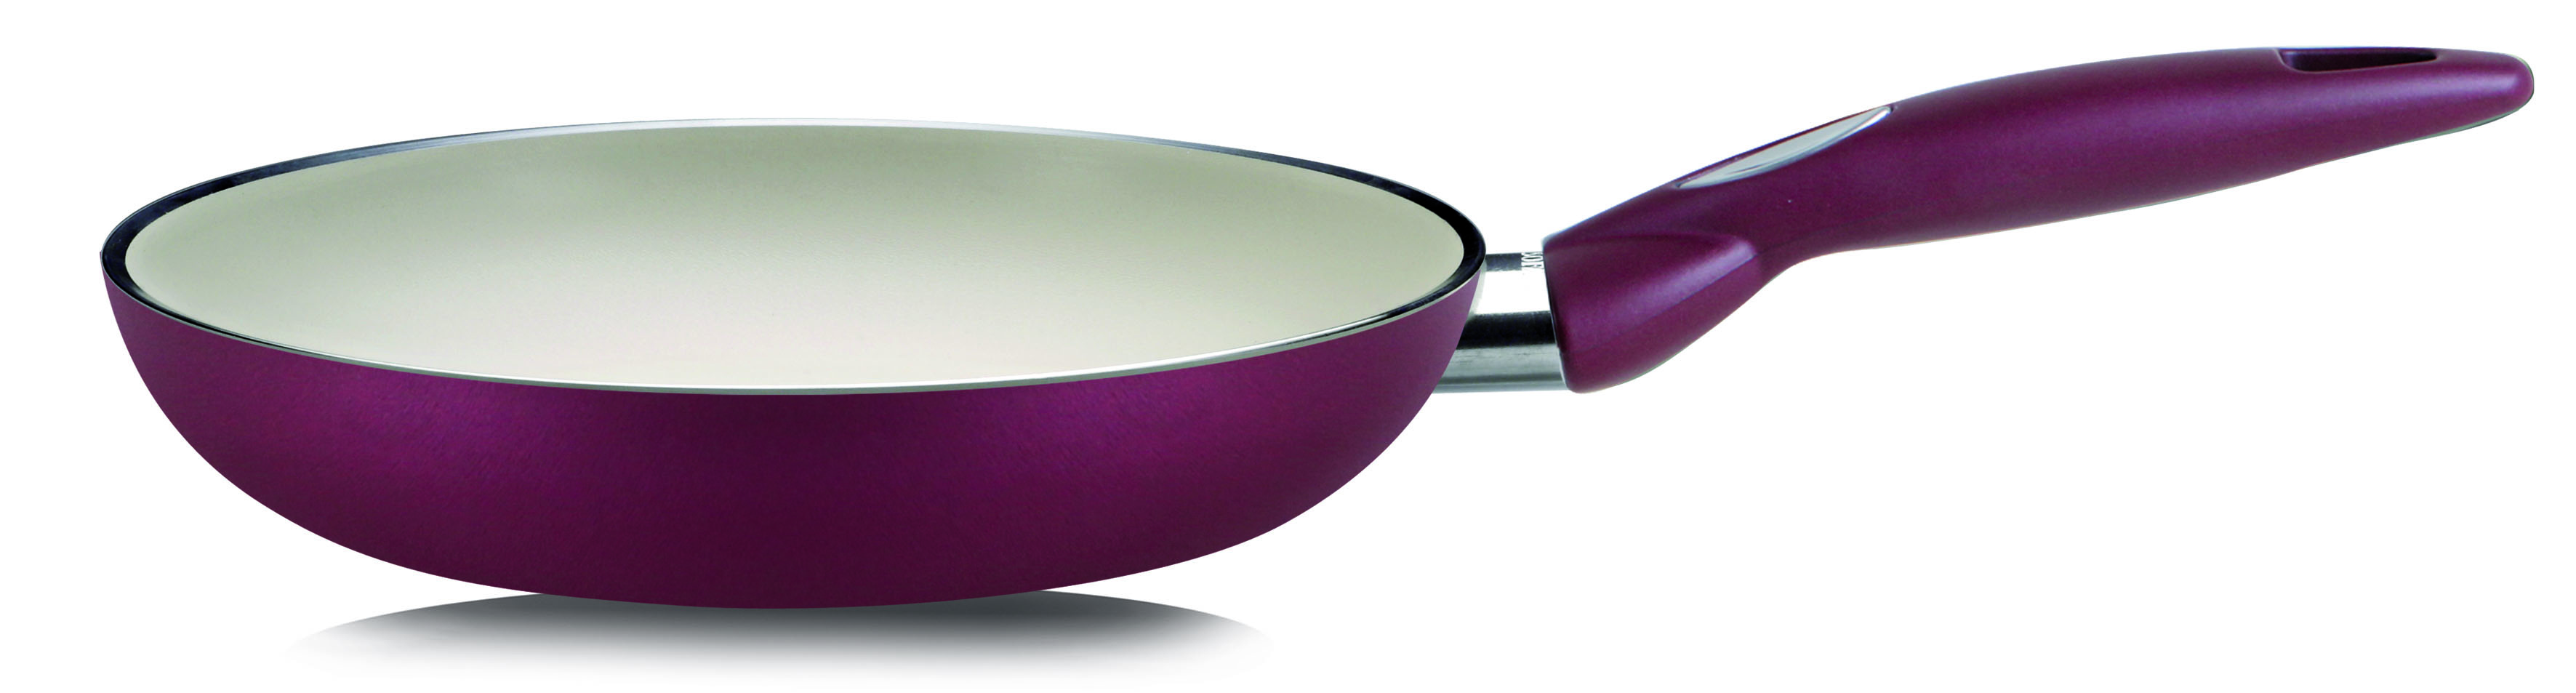 Princess Passion Fry Pan Distributor Of Fine Wine